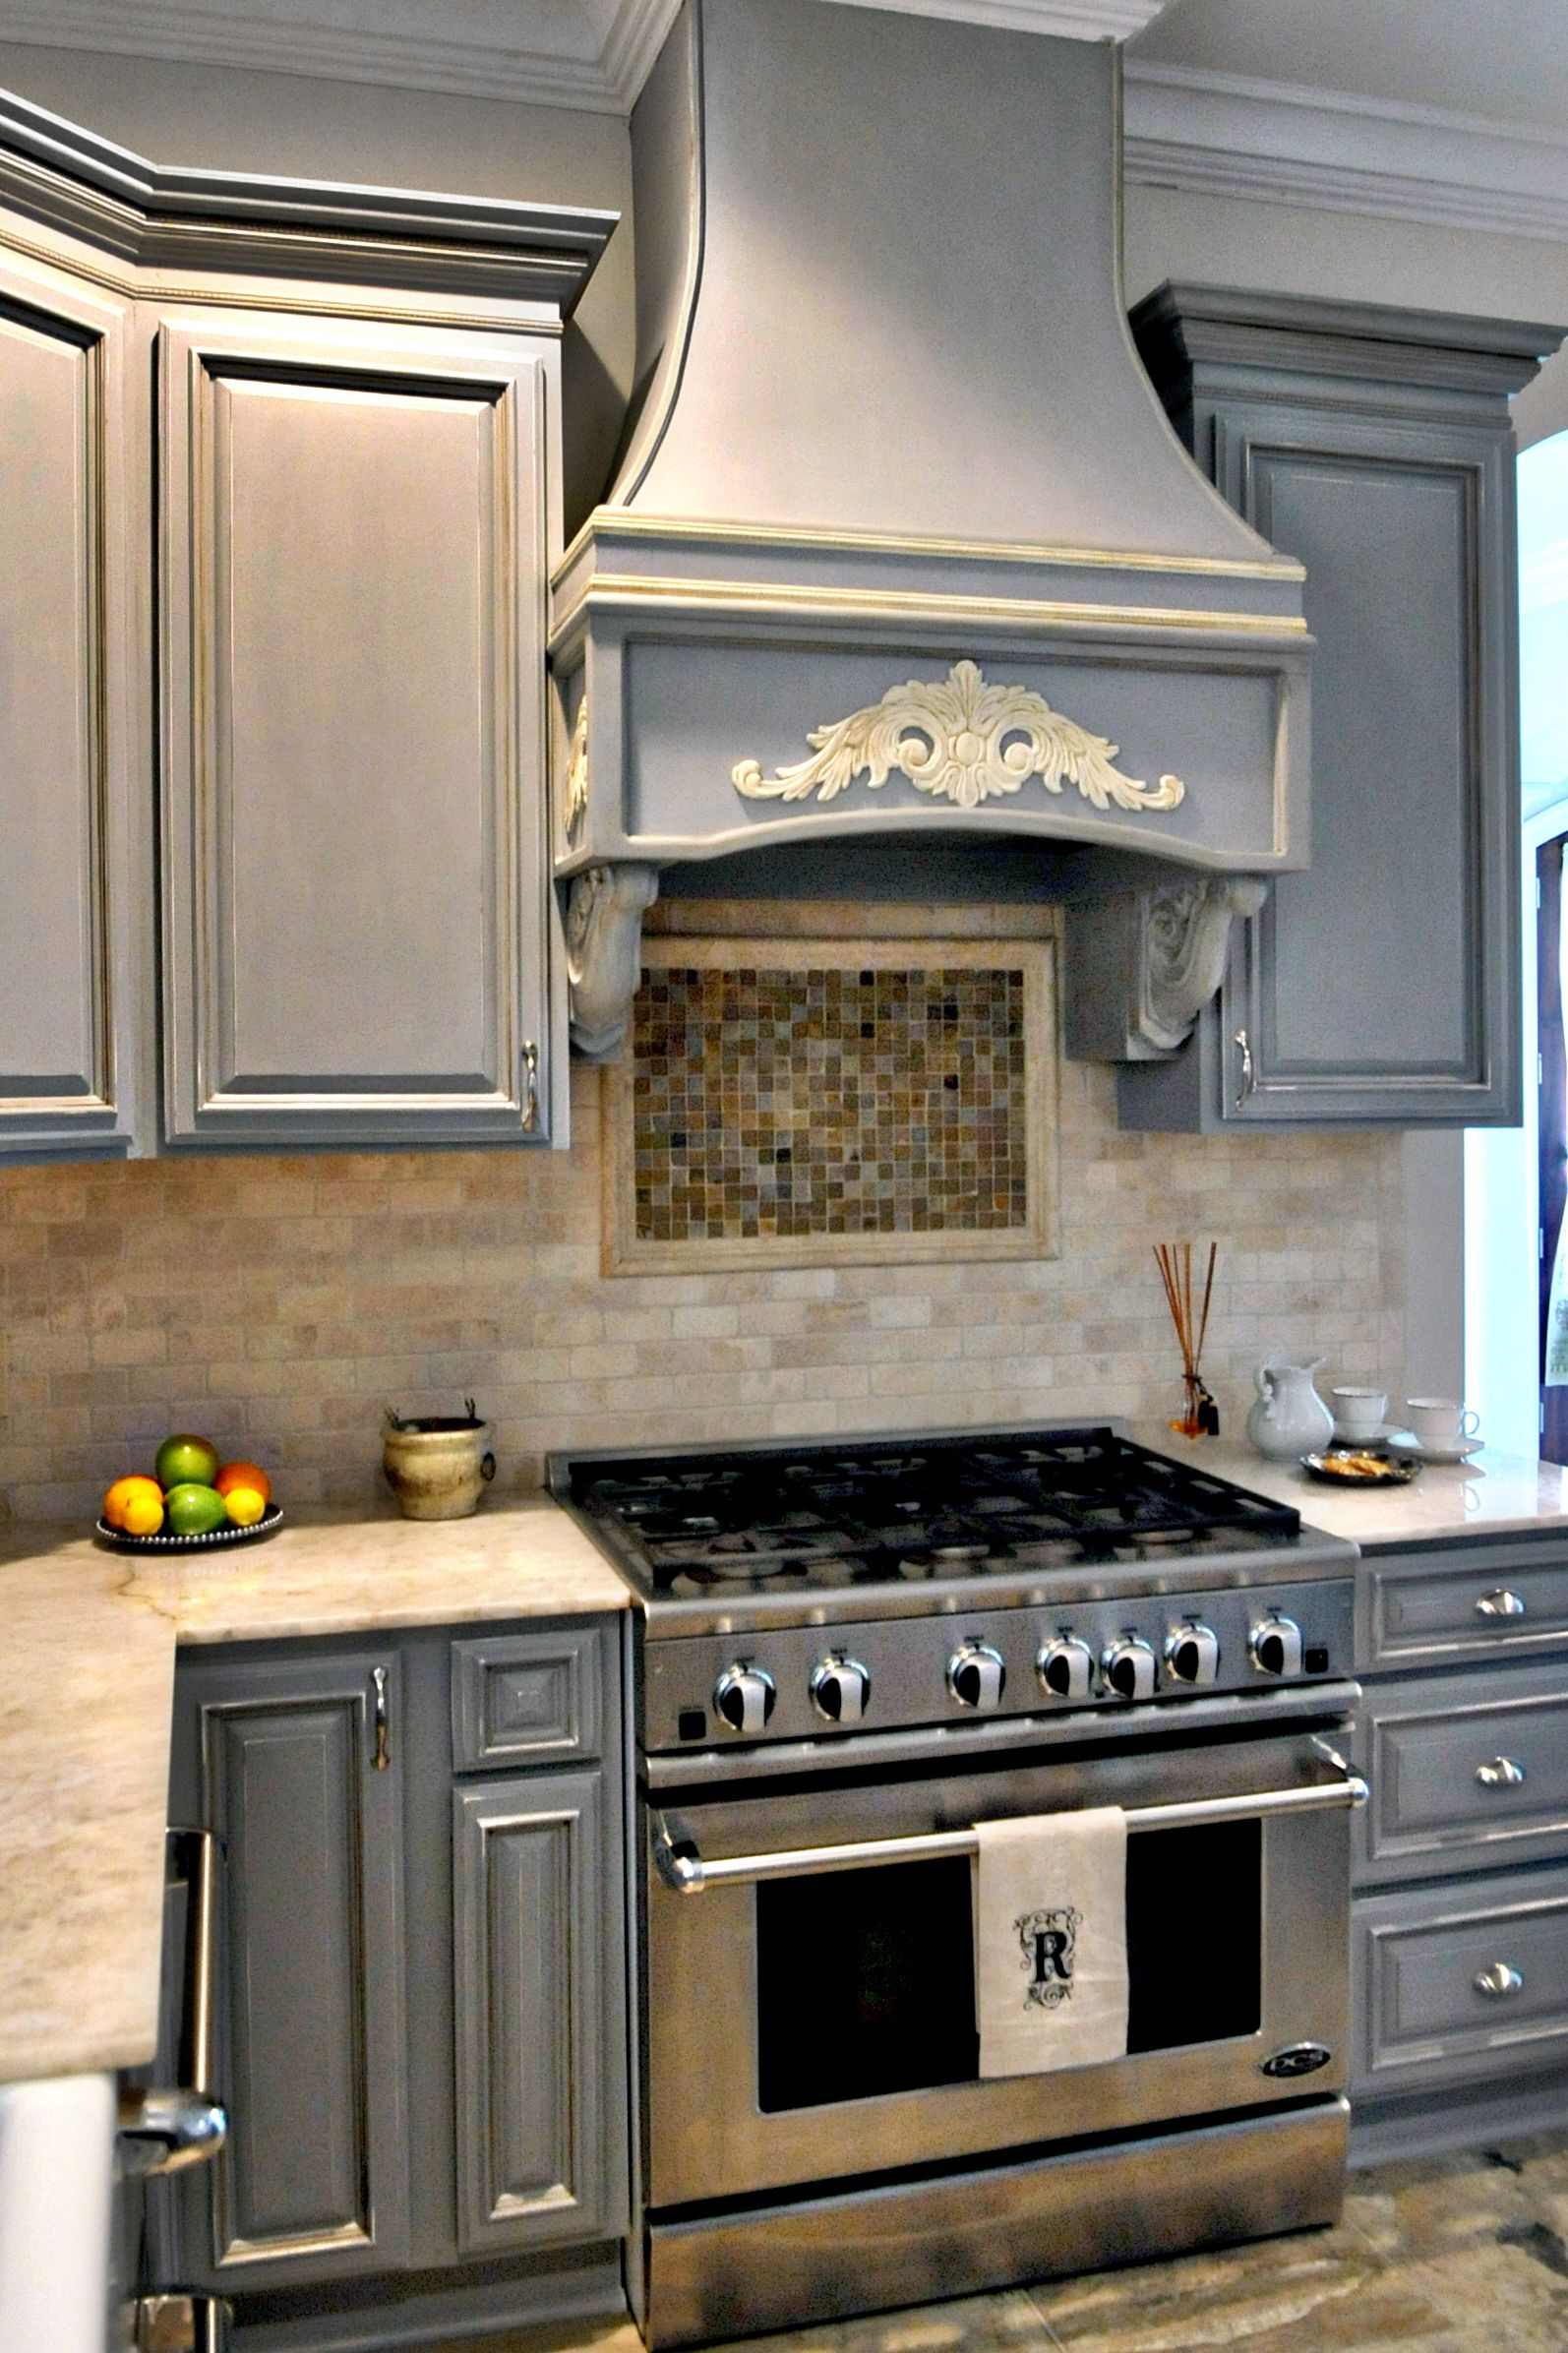 Want My Kitchen To Look Like This Chalk Paint Kitchen Cabinets Annie Sloan Chalk Paint Kitchen Cabinets Kitchen Cabinets Painted Grey